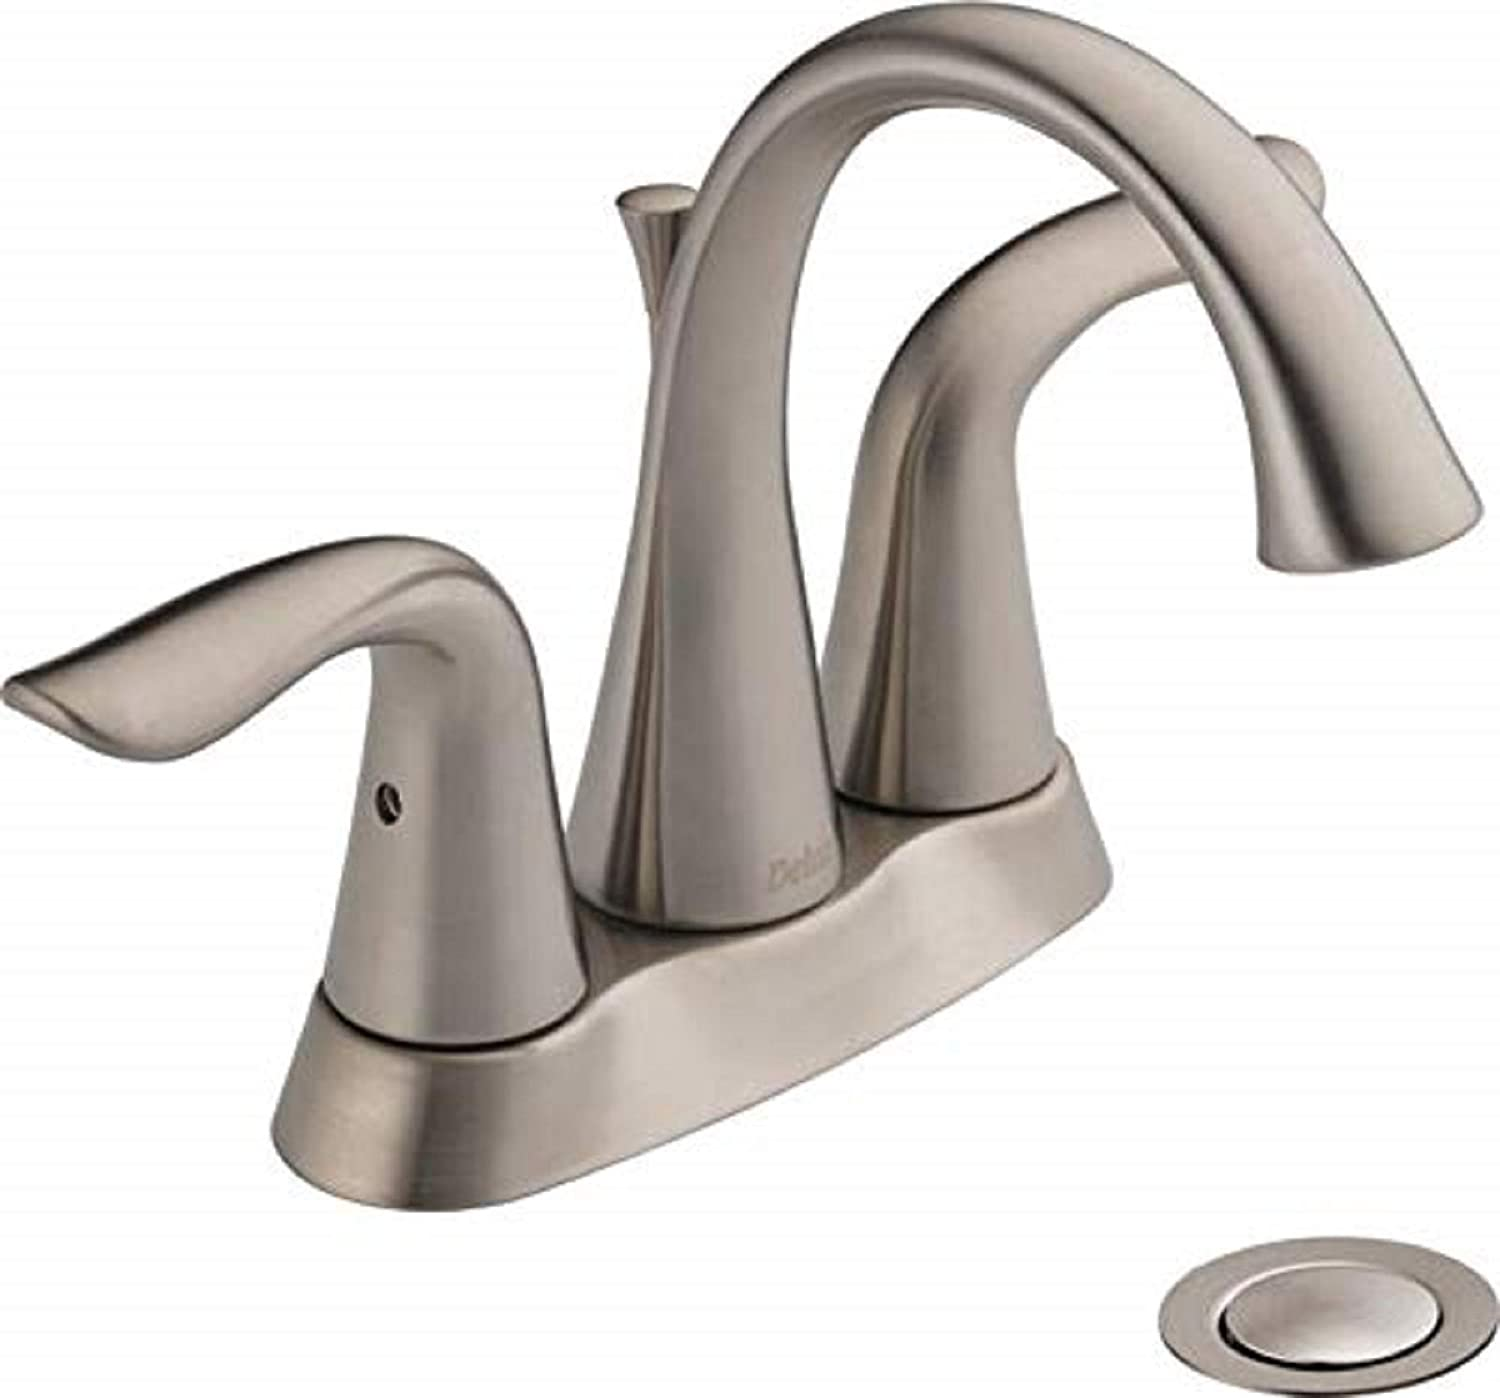 Delta Faucet Lahara Centerset Bathroom Faucet Brushed Nickel, Bathroom Sink Faucet, Diamond Seal Technology, Metal Drain Assembly, Stainless 2538-SSMPU-DST - Touch On Bathroom Sink Faucets -